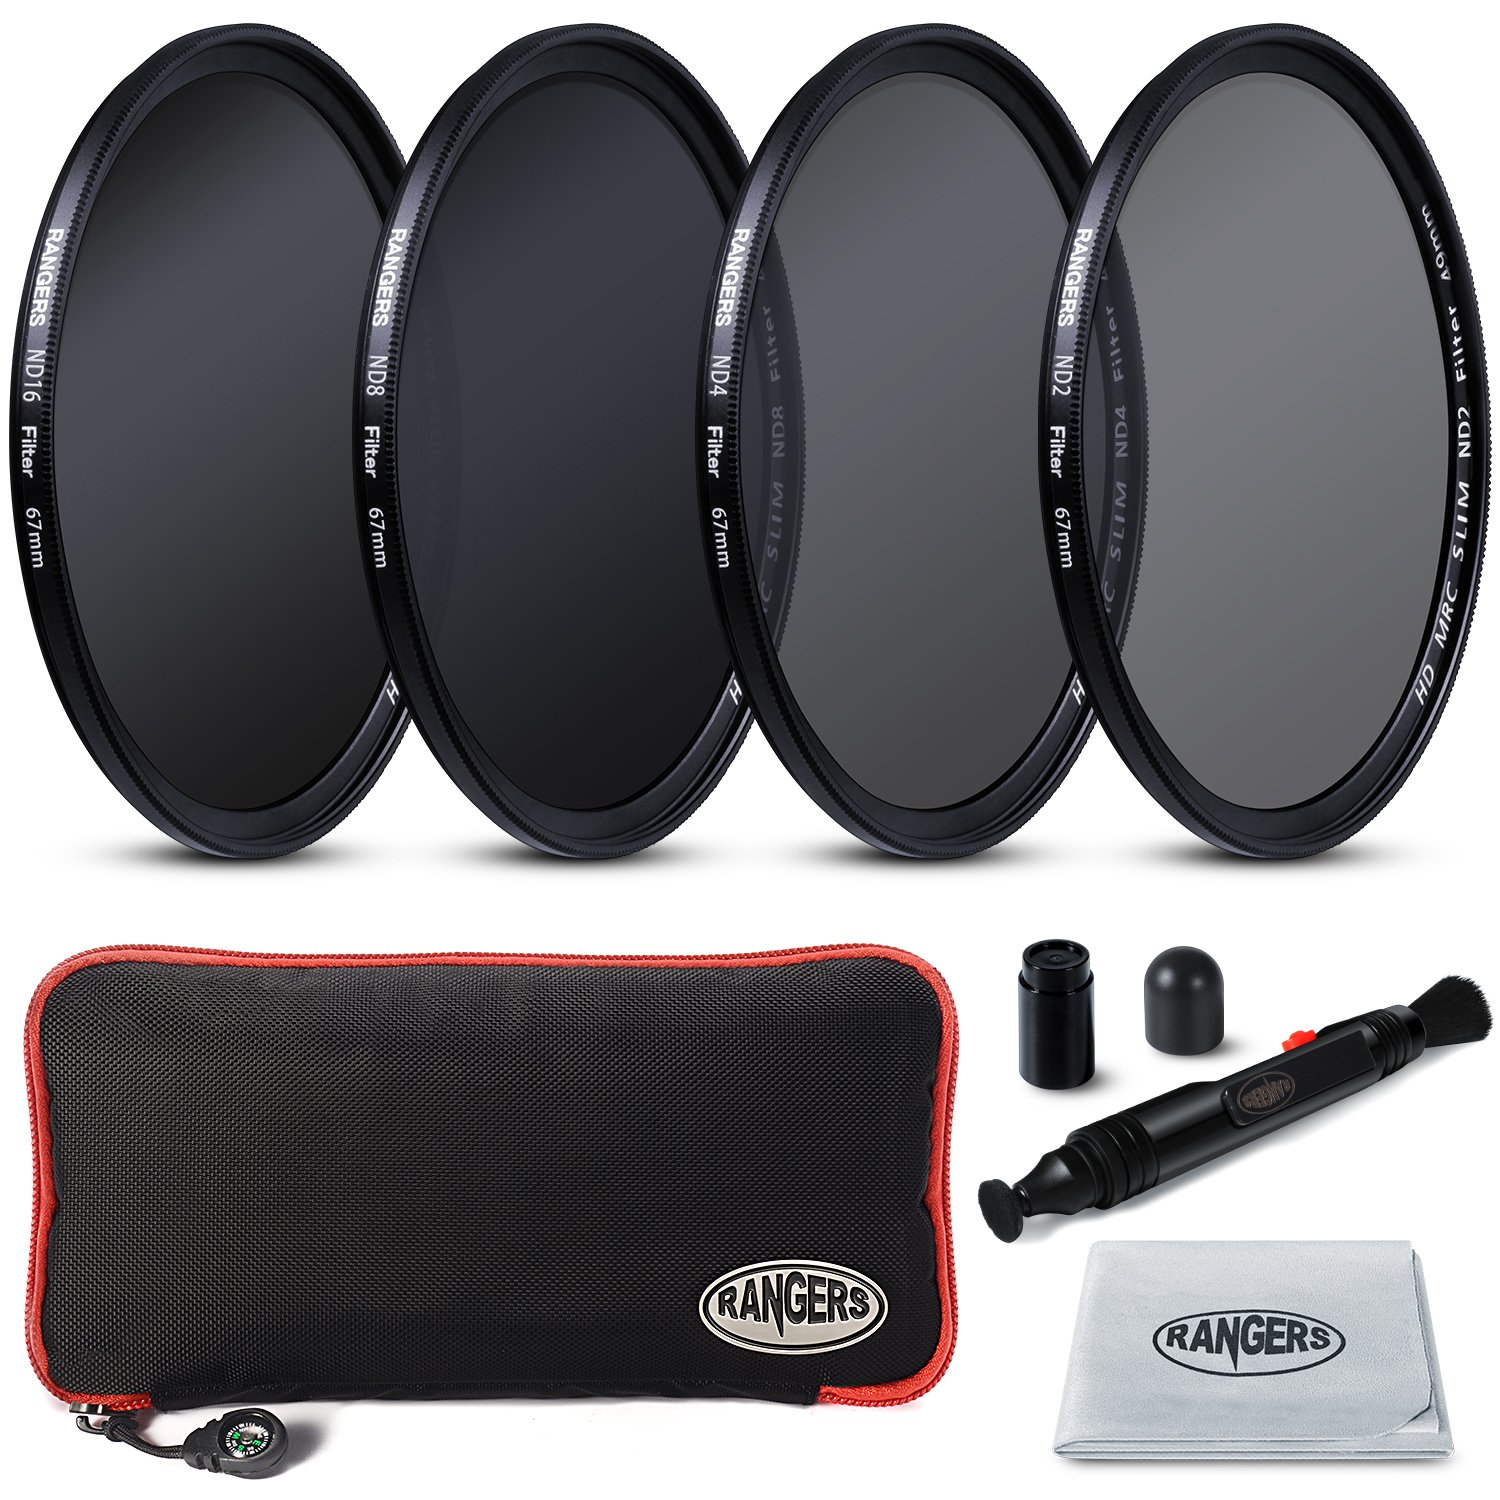 Rangers 67mm Full ND2, ND4, ND8, ND16 Neutral Density Filters and Carrying Case + Lens Cleaning Cloth + Lens Cleaning Pen FBA_4331993785